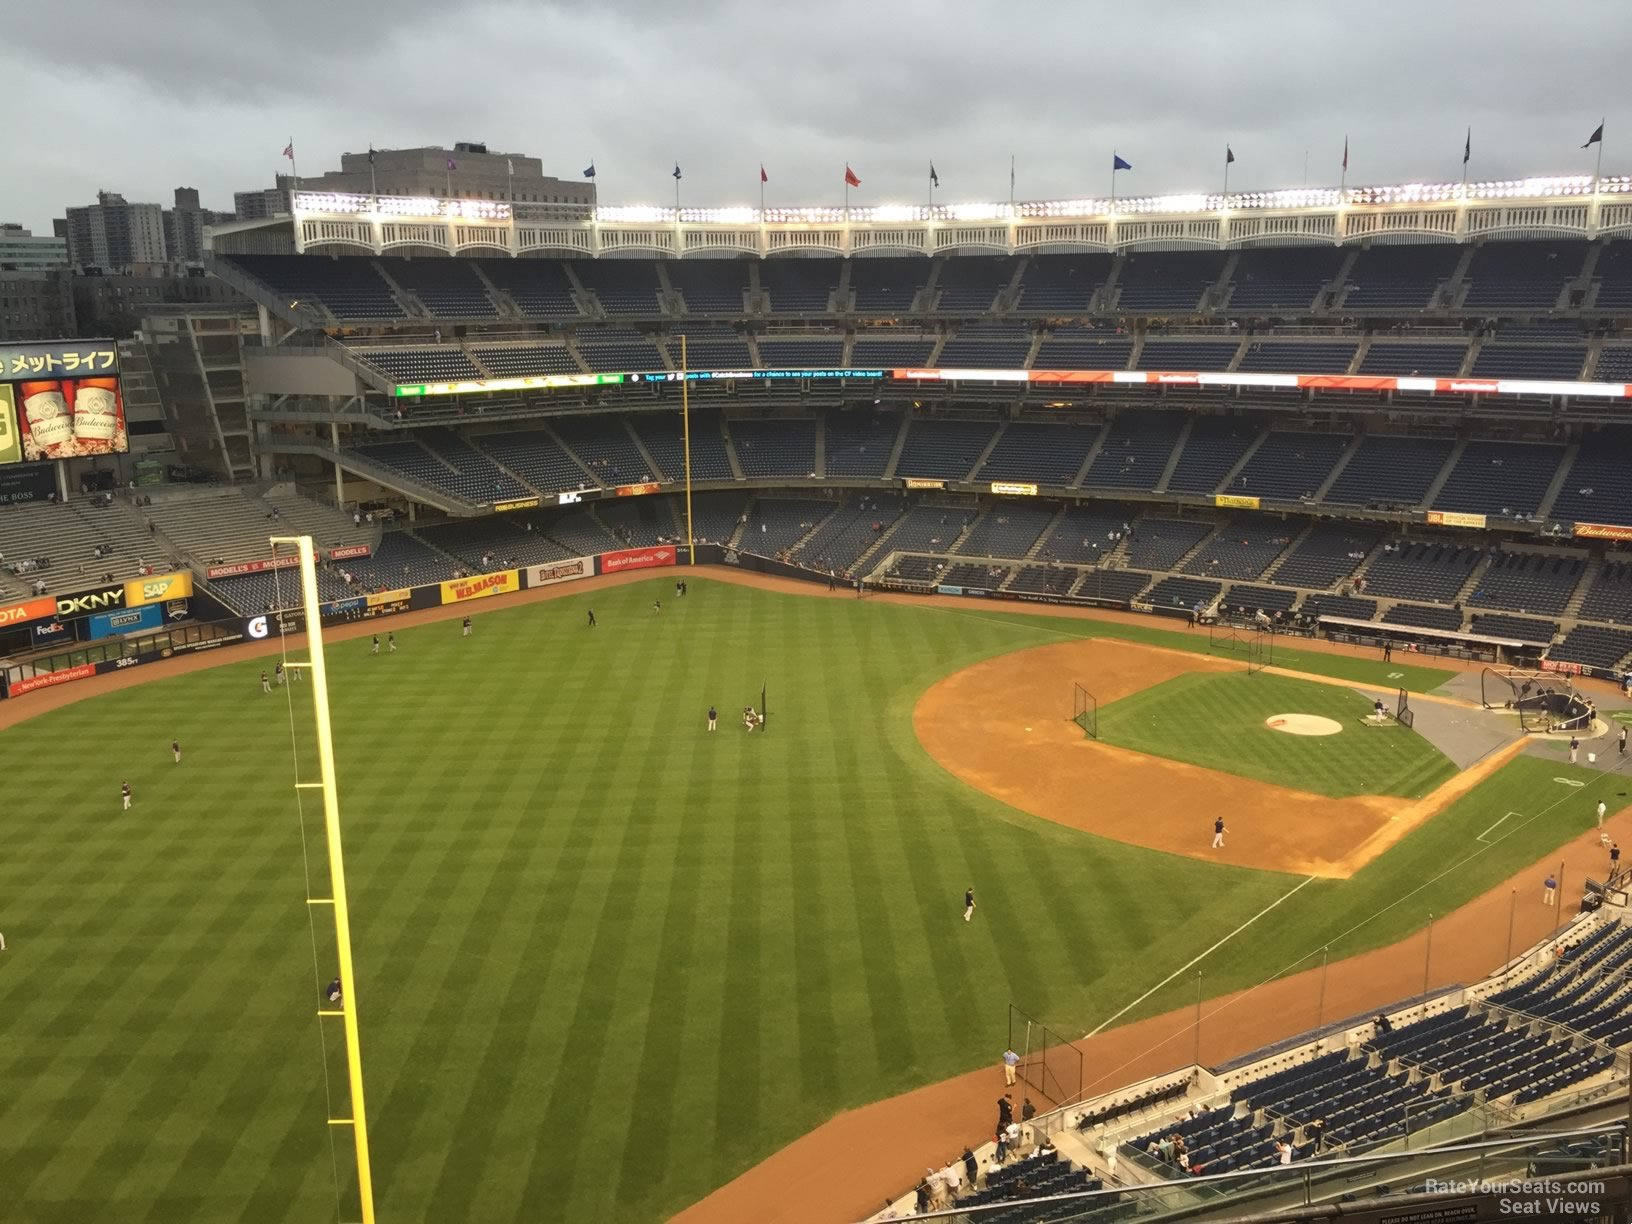 New York Yankees Seat View for Yankee Stadium Section 431A, Row 6